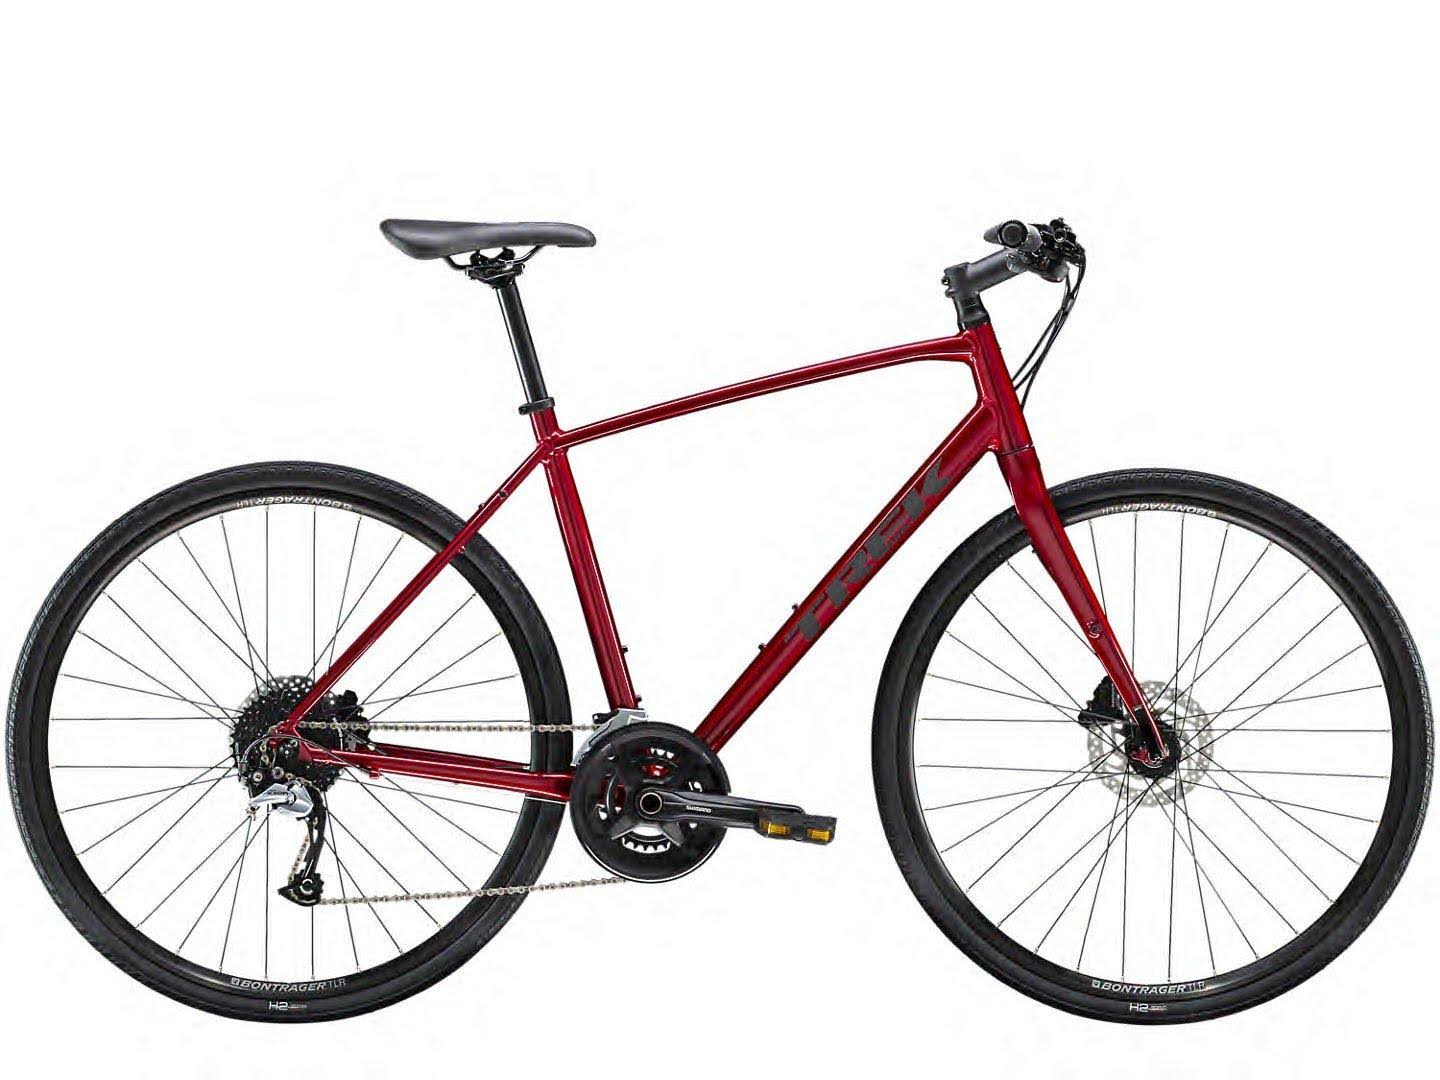 Trek FX 3 Disc 2020 Hybrid Bike - Red, XLarge